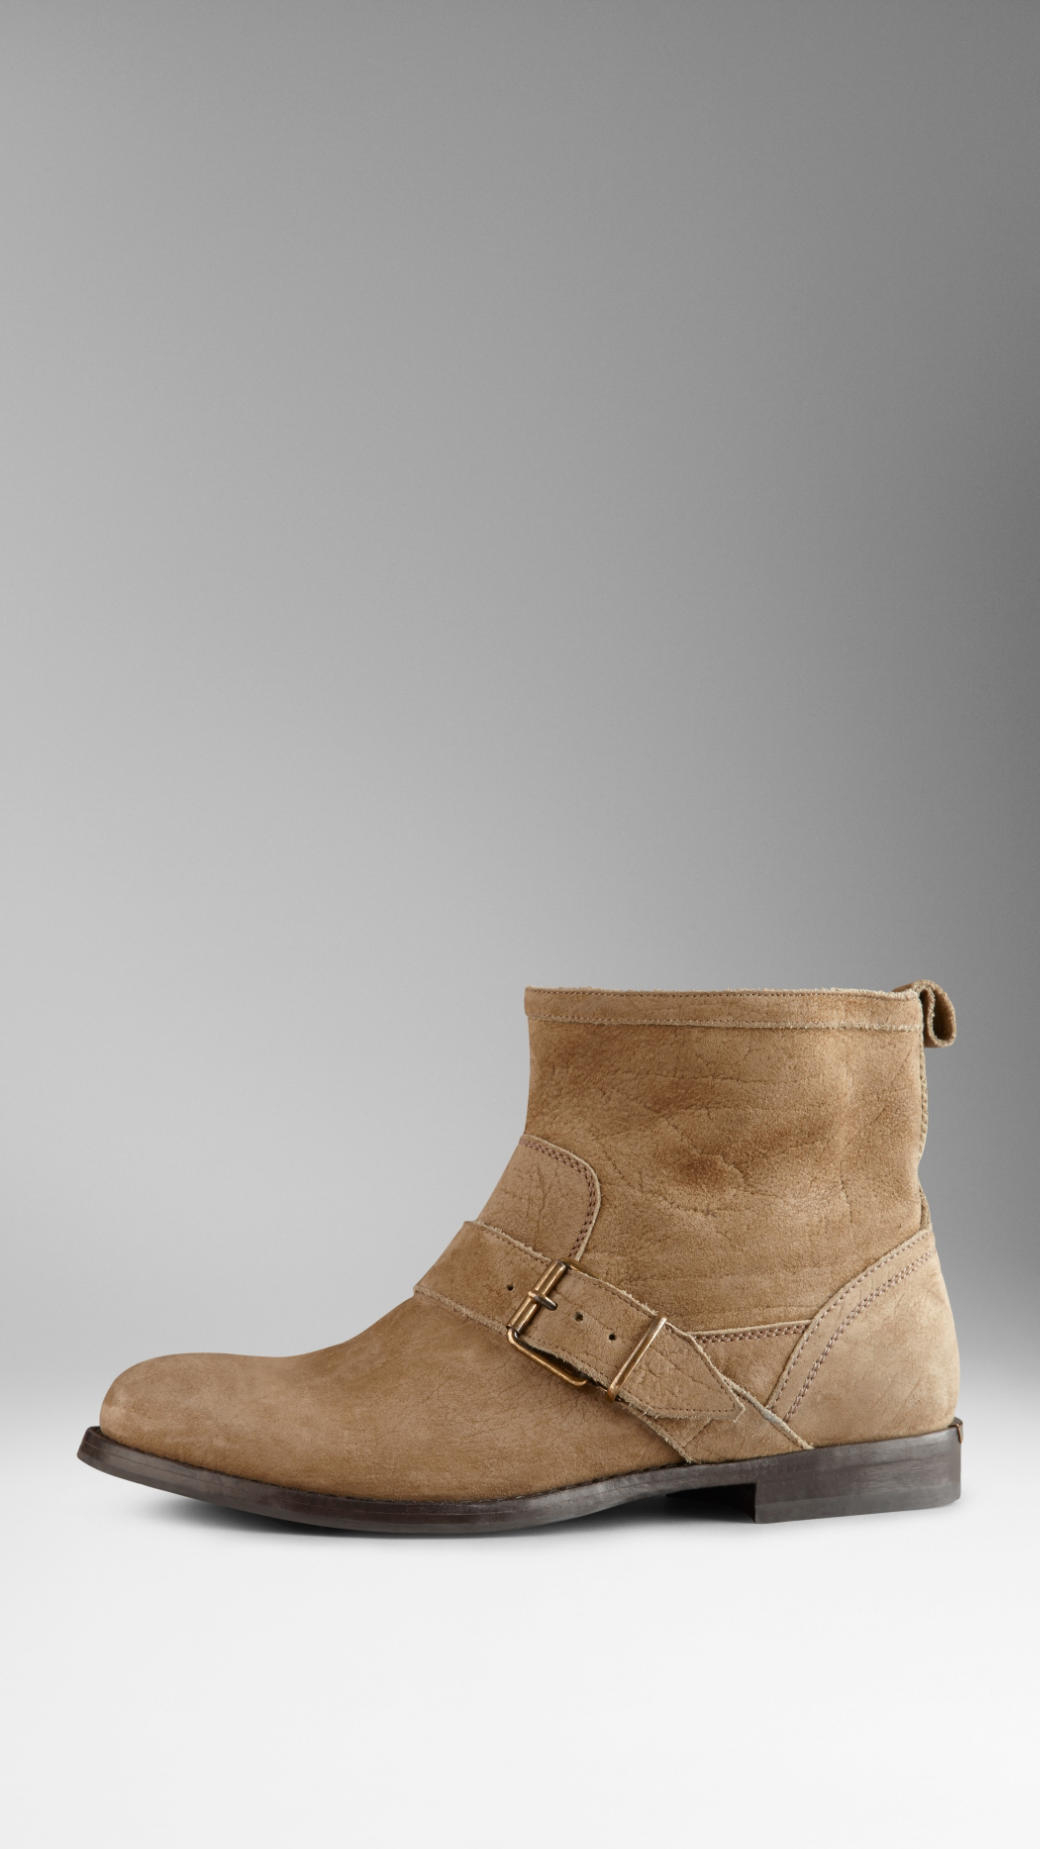 e37cb047c17 Lyst - Burberry Buckle Detail Suede Ankle Boots in Natural